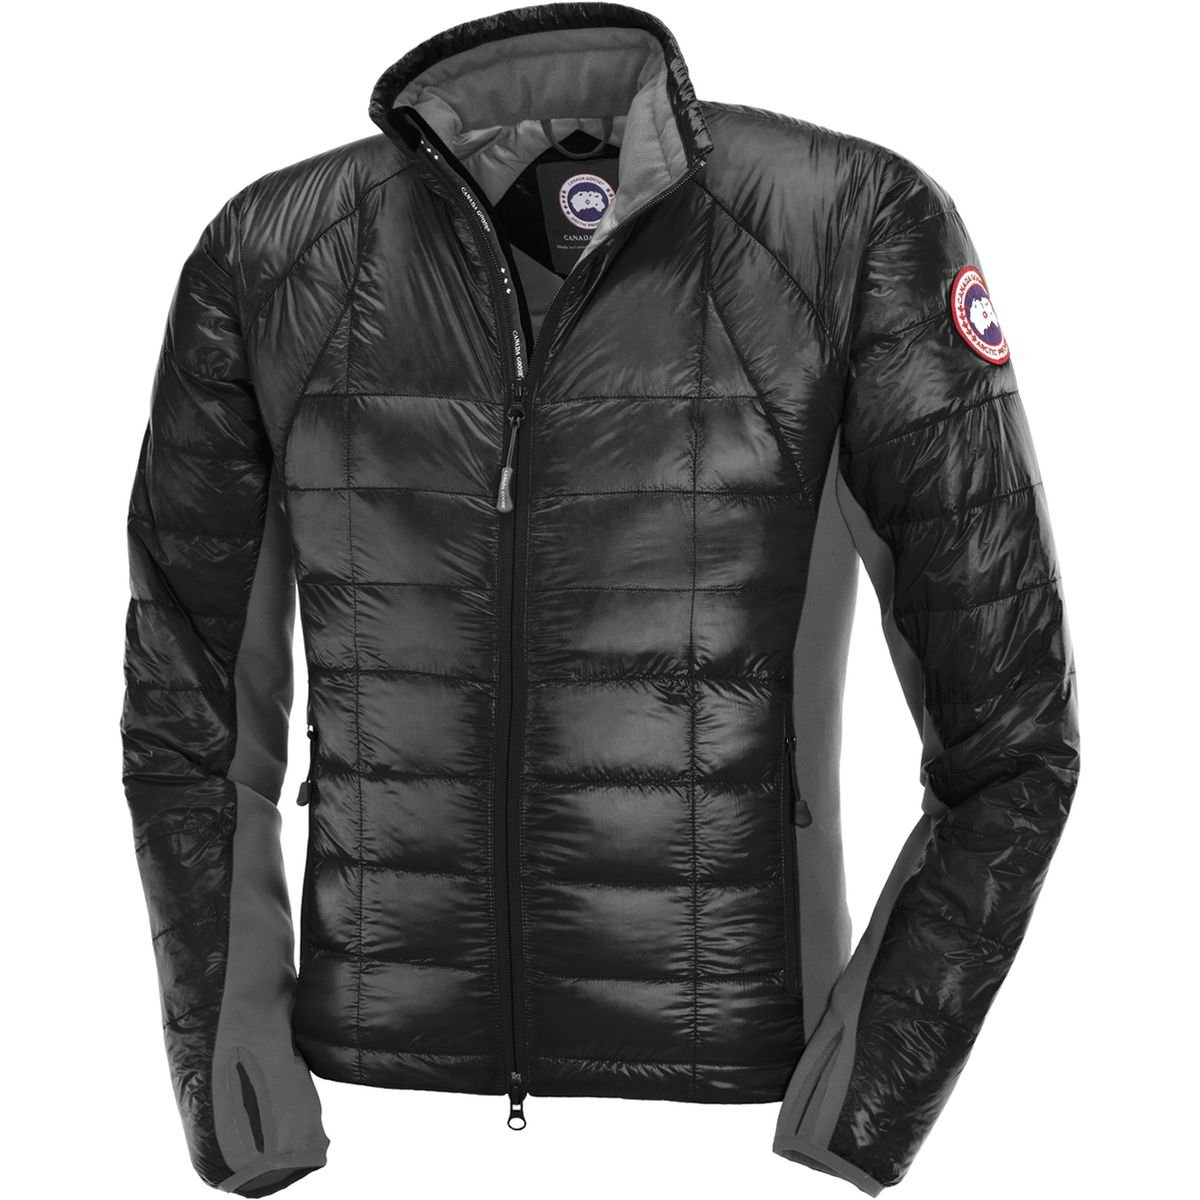 Canada Goose' hybridge jacket uk